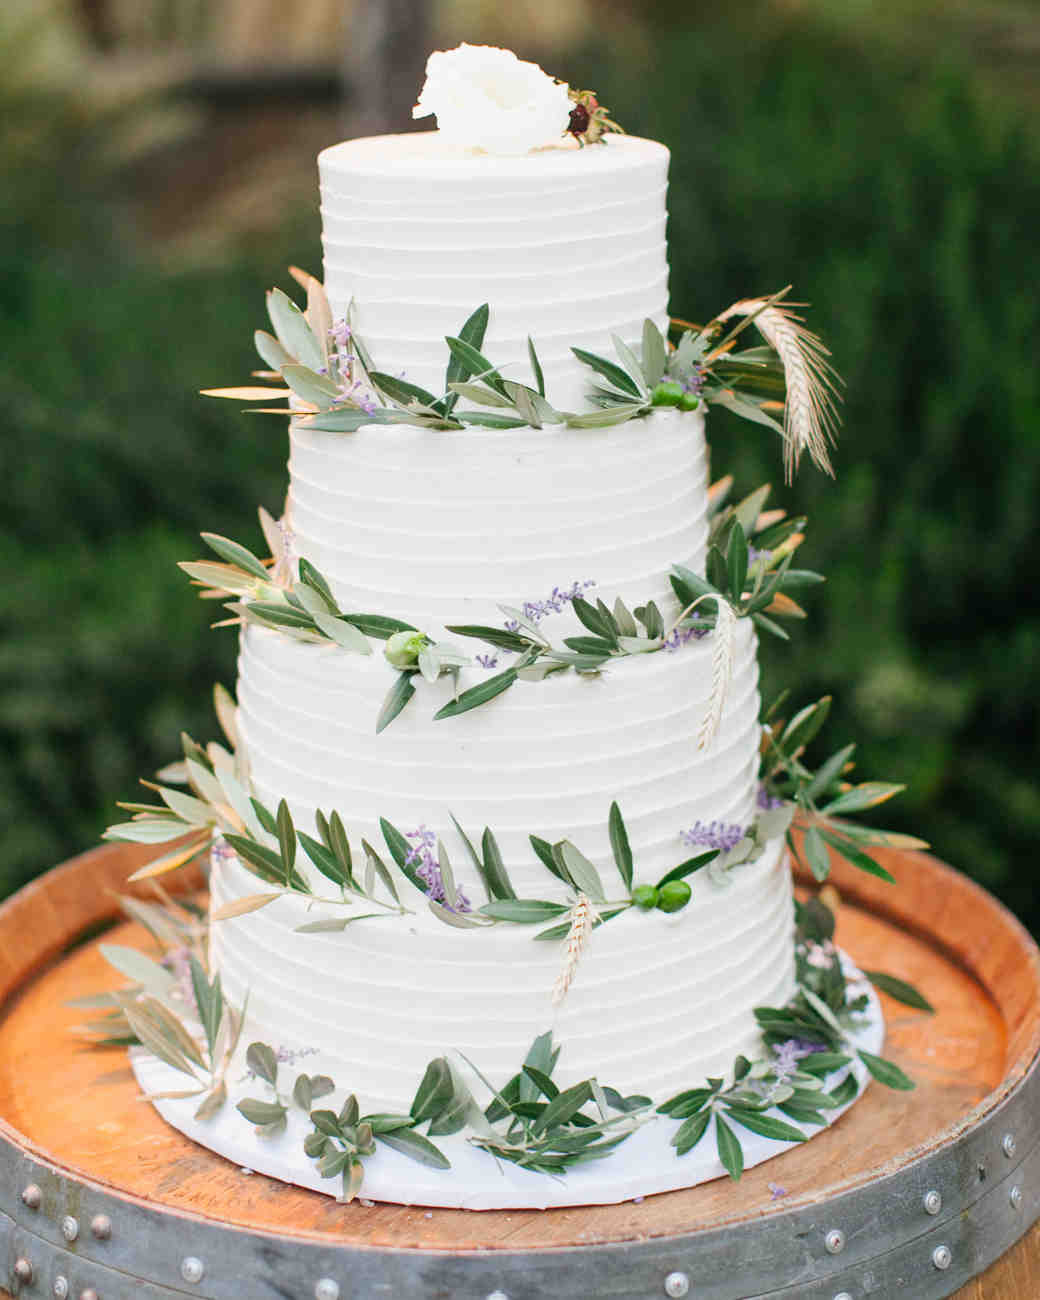 Rustic Country Wedding Cakes  30 Rustic Wedding Cakes We re Loving